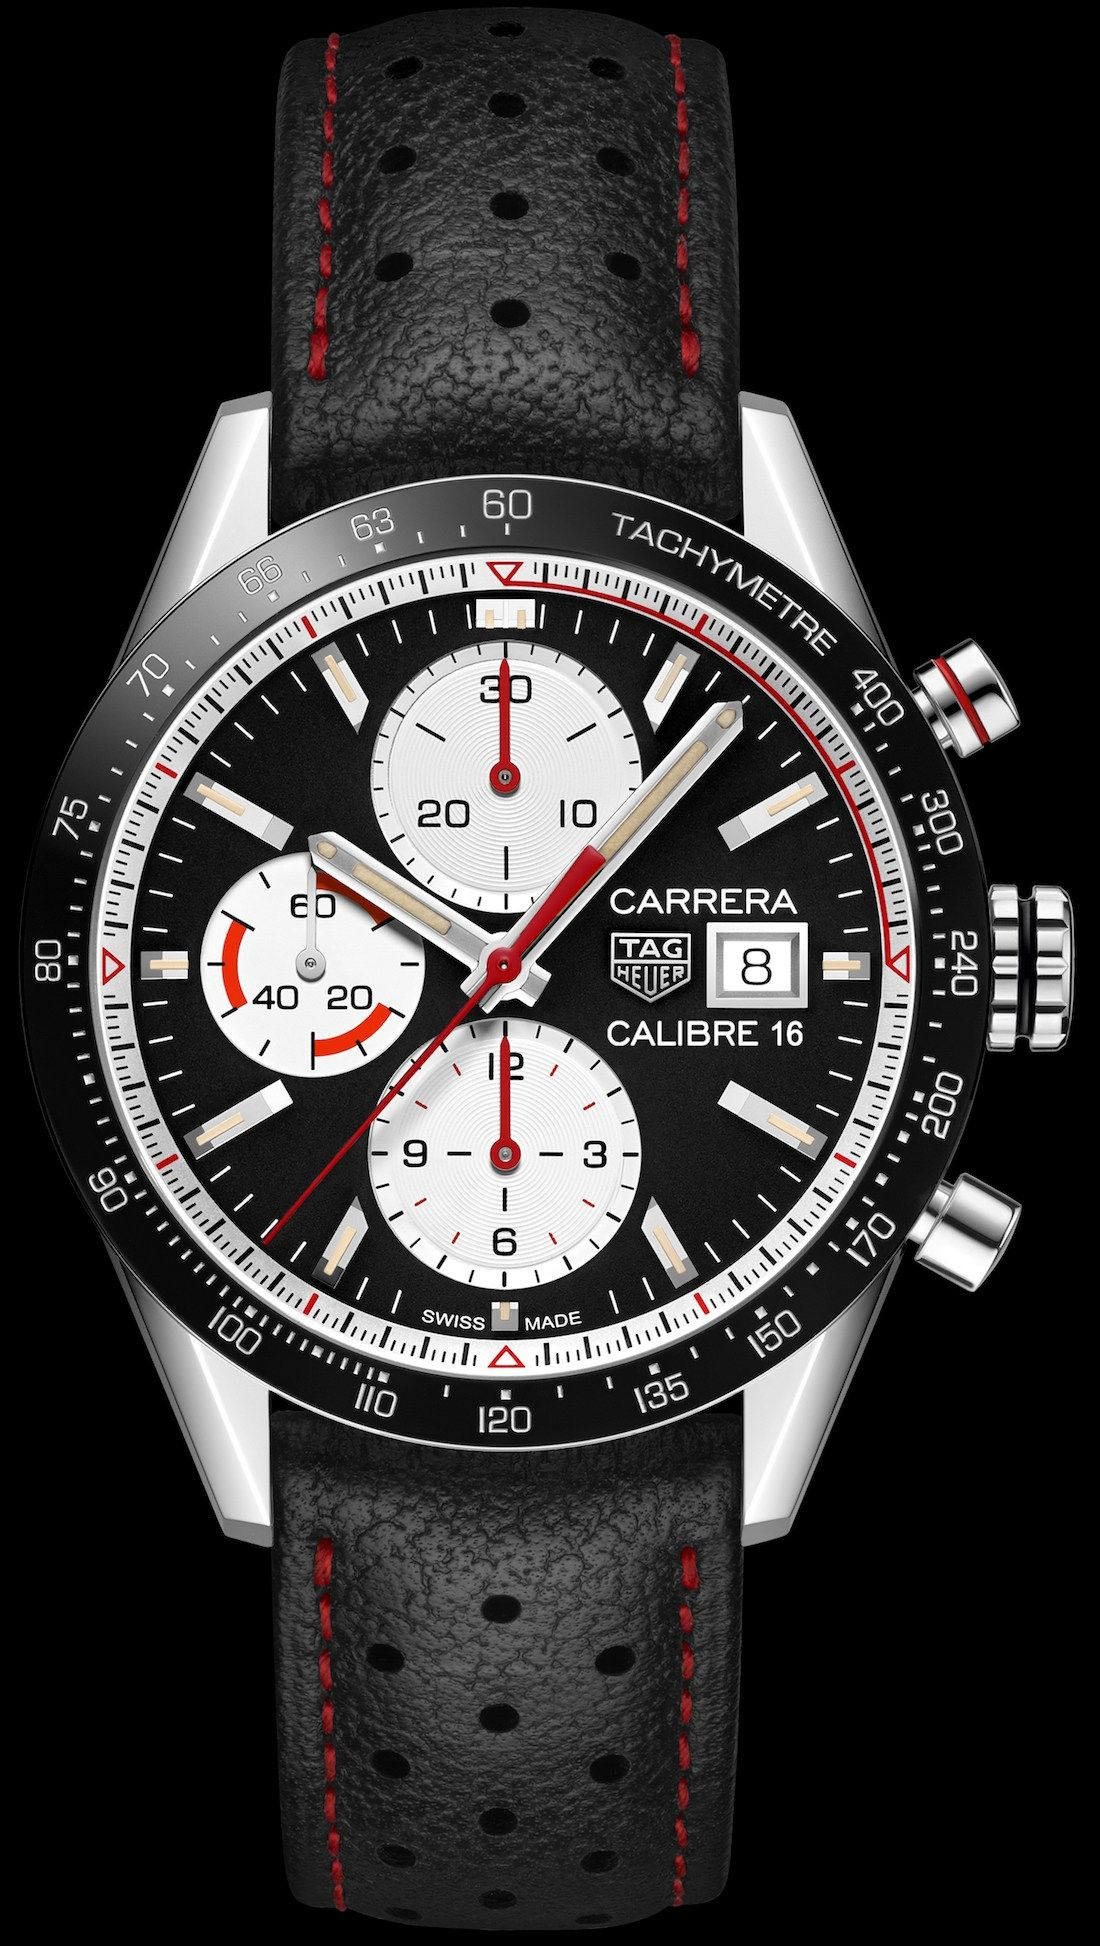 937618fe2227 Baselworld 2018  TAG Heuer Carrera Calibre 16 Chronograph Watch ...